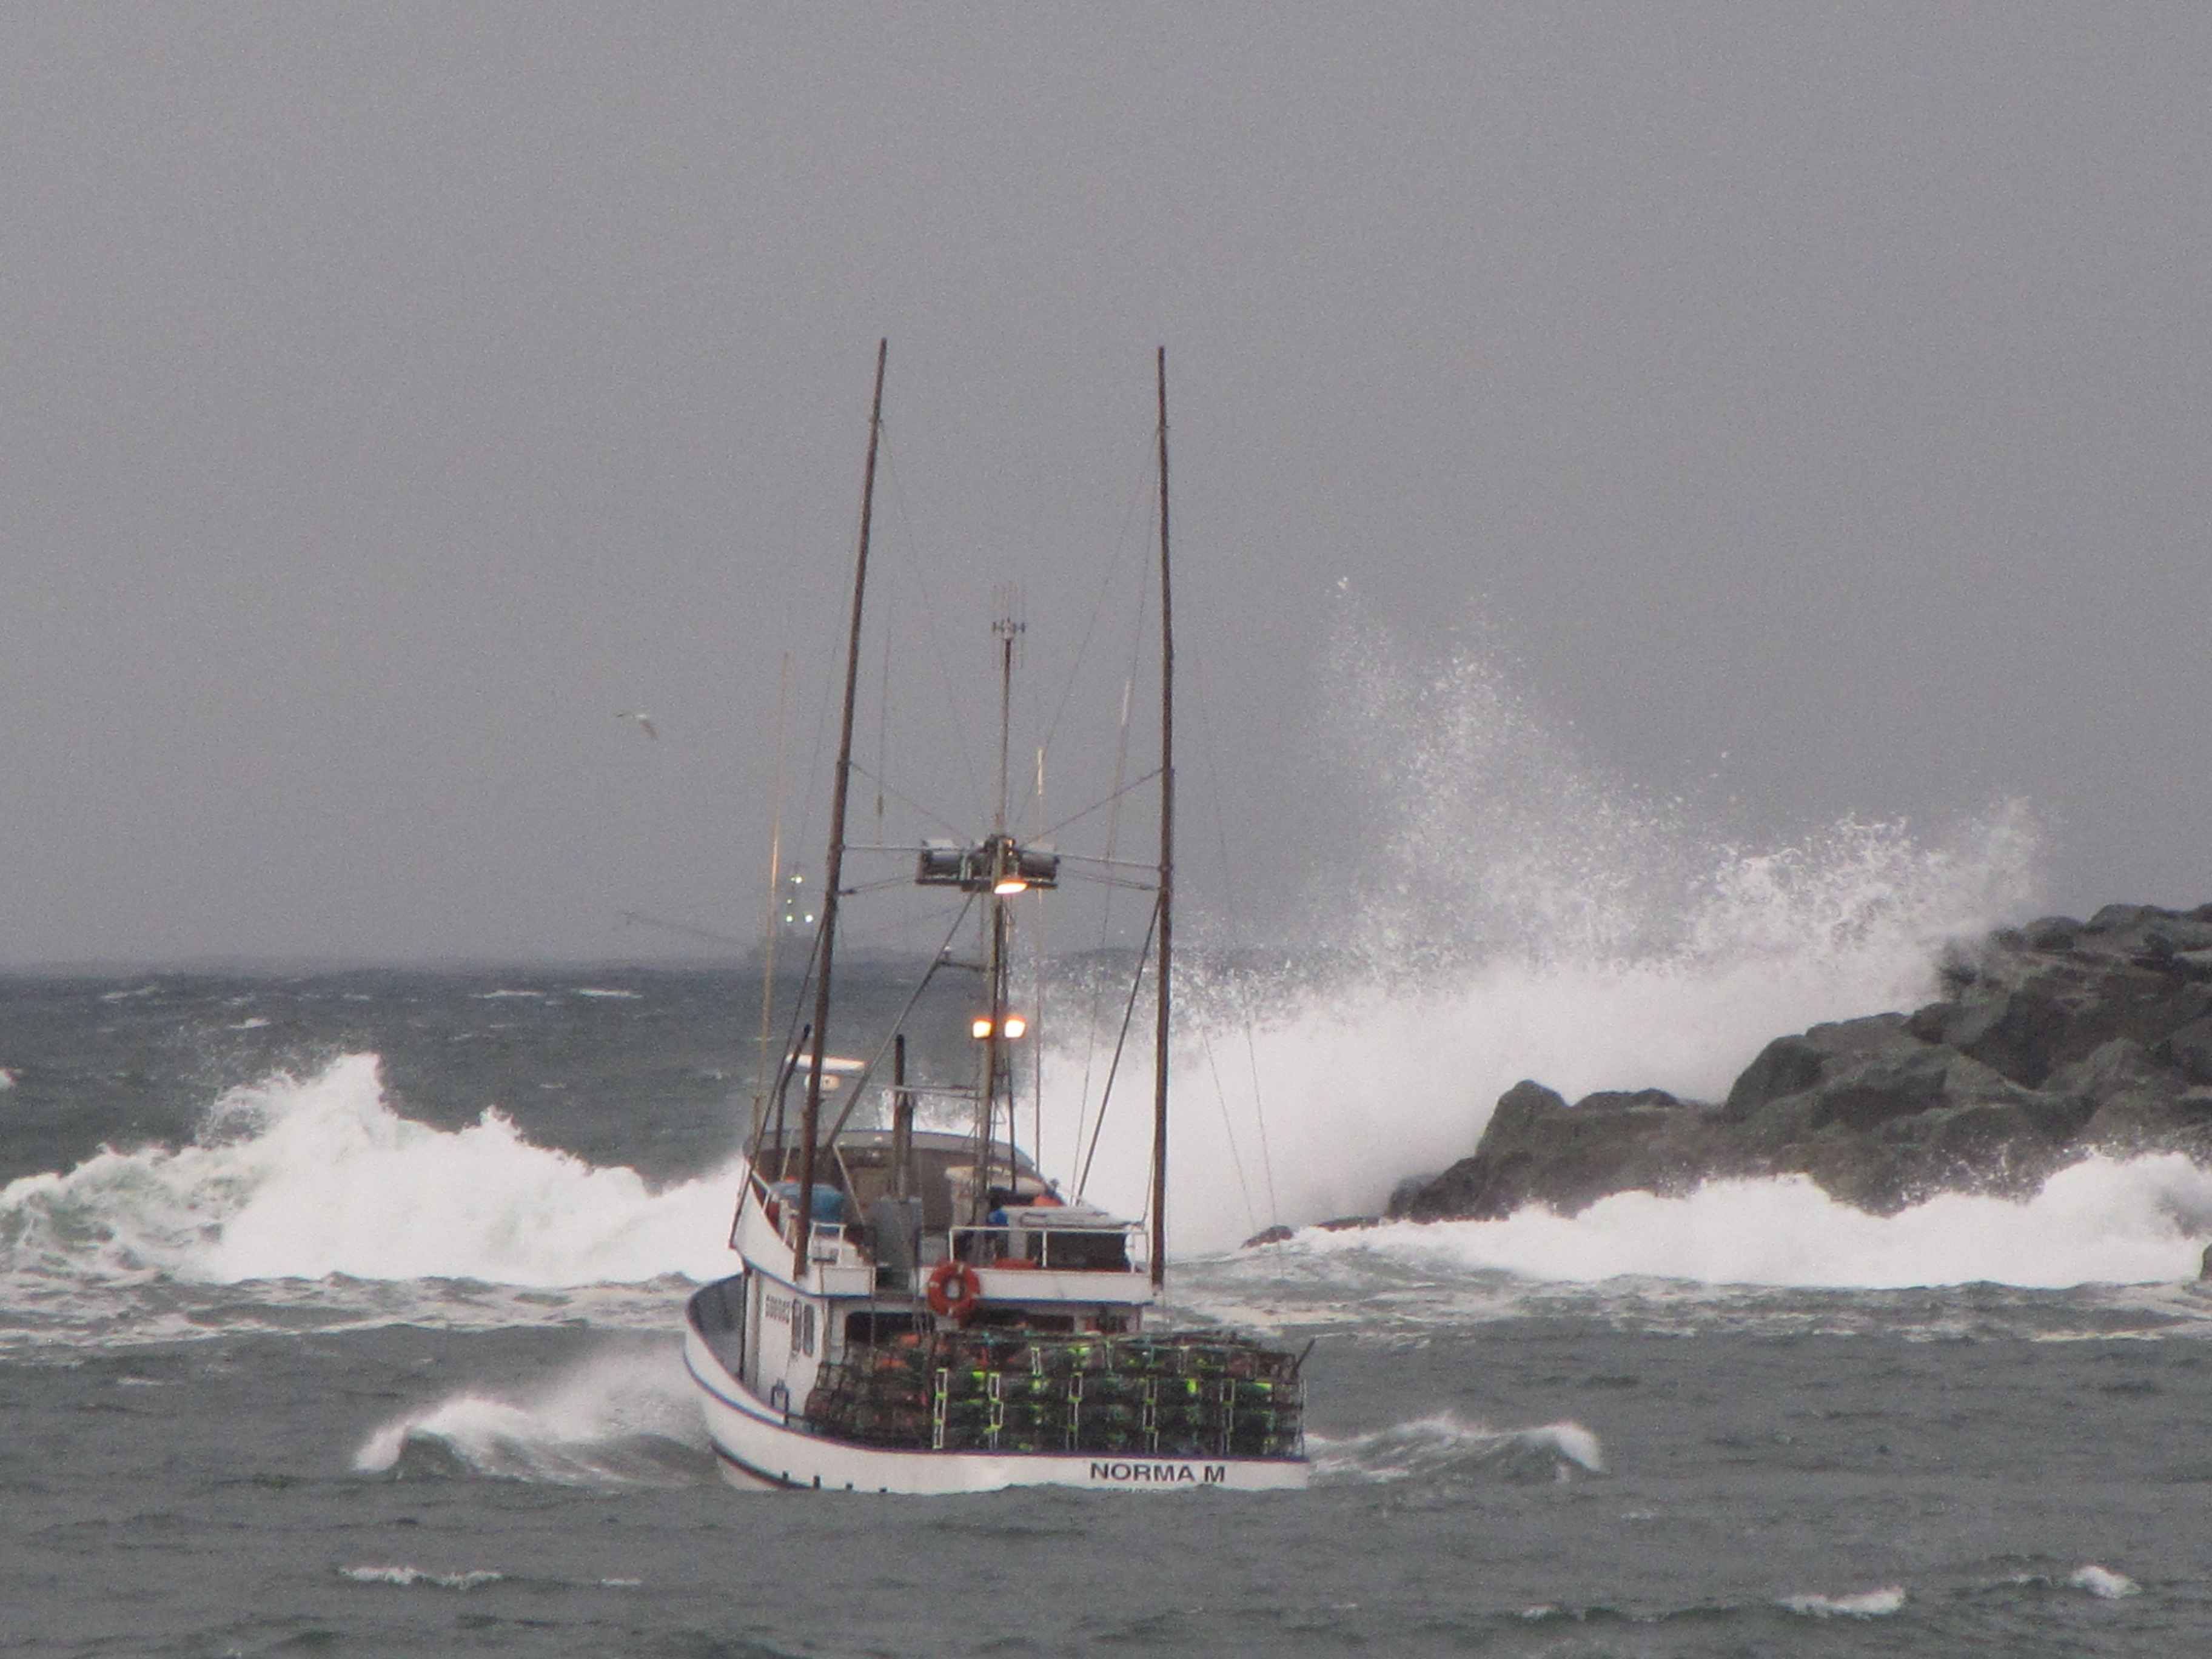 Dungeness crab boats oregon wa pnw crabbers dungeness for Crab fishing oregon